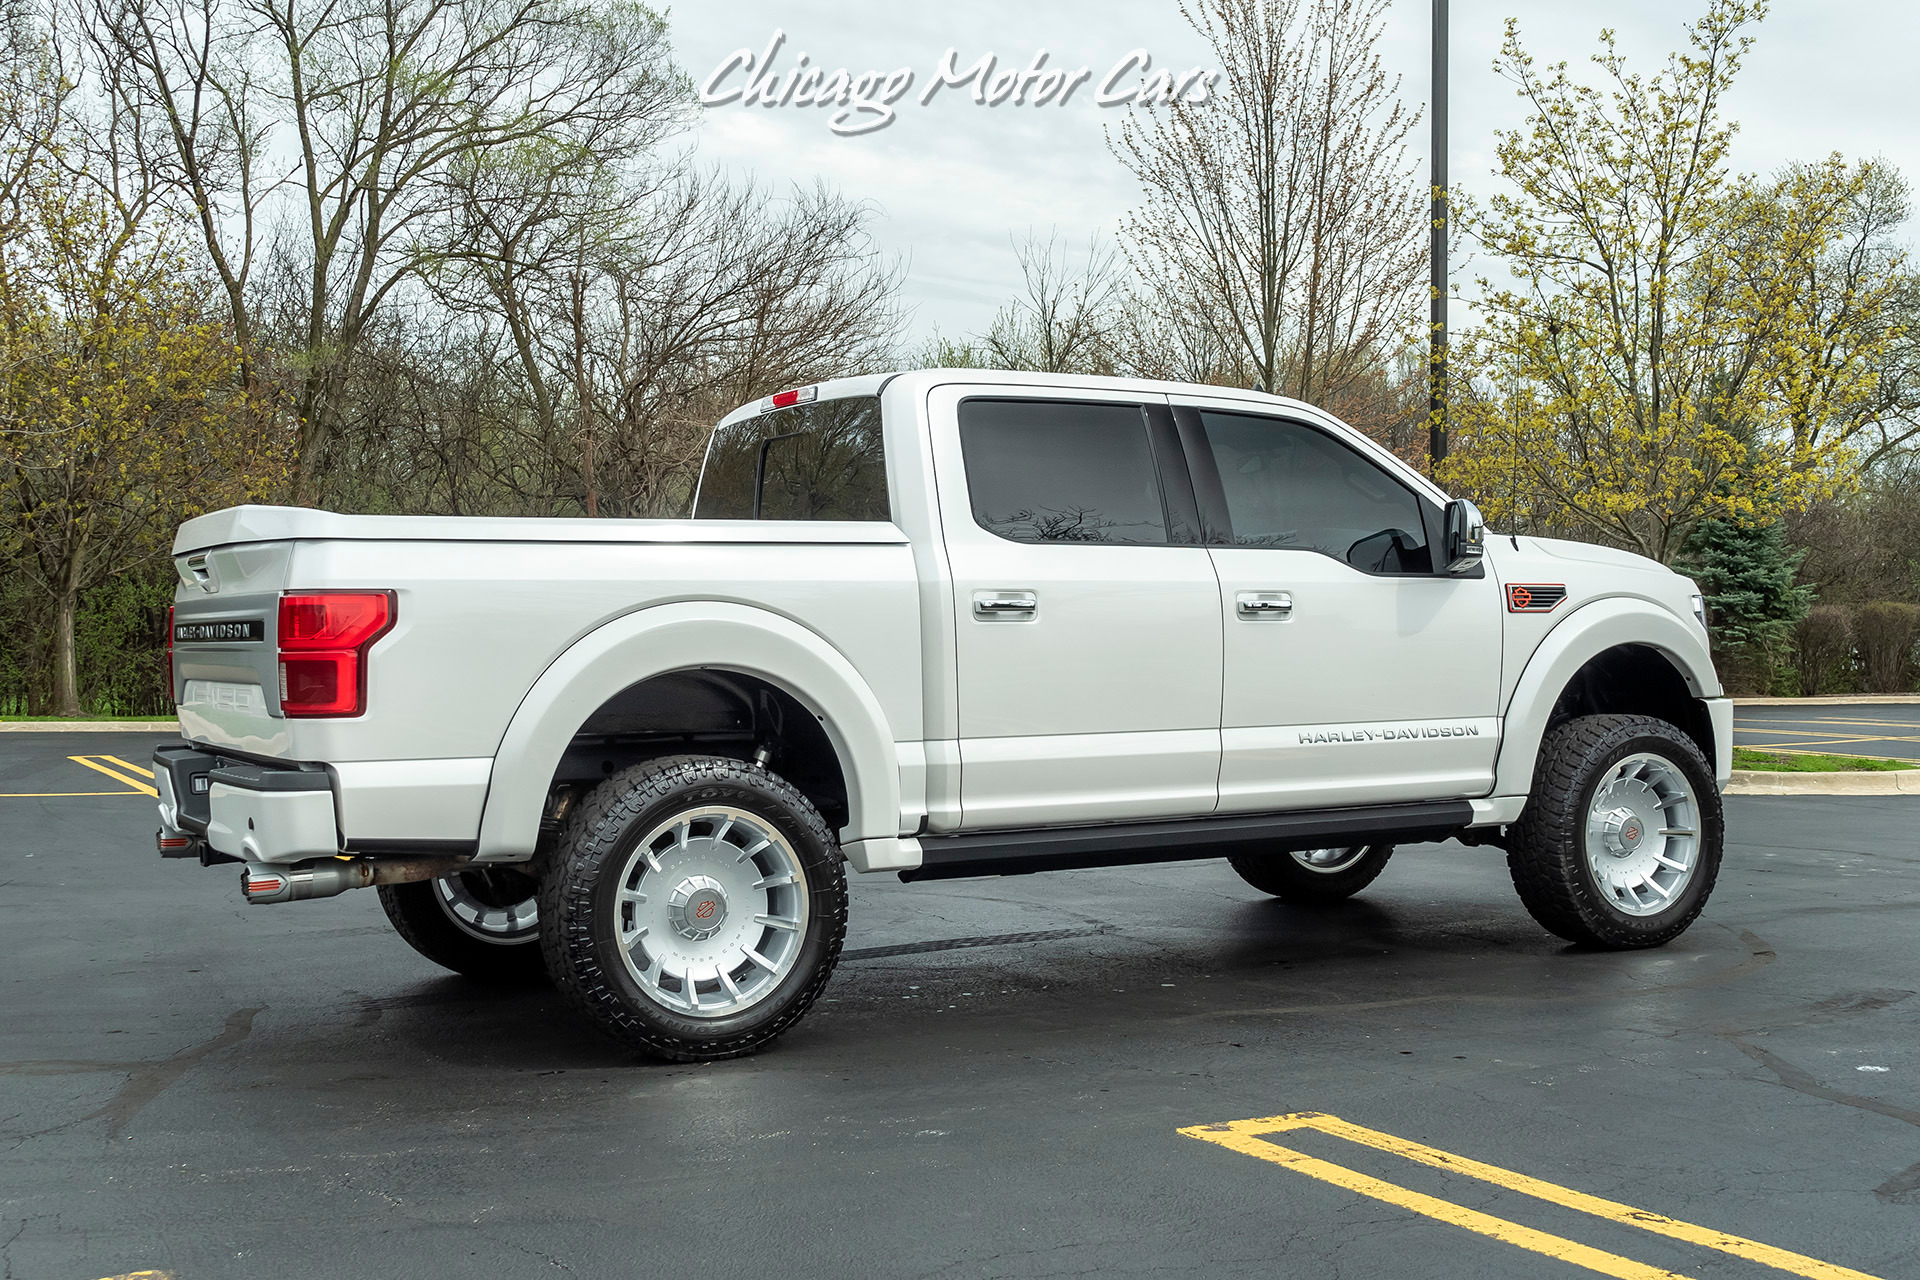 Used-2019-Ford-F-150-Harley-Davidson--359-MSRP-97710-Lariat-SuperCrew